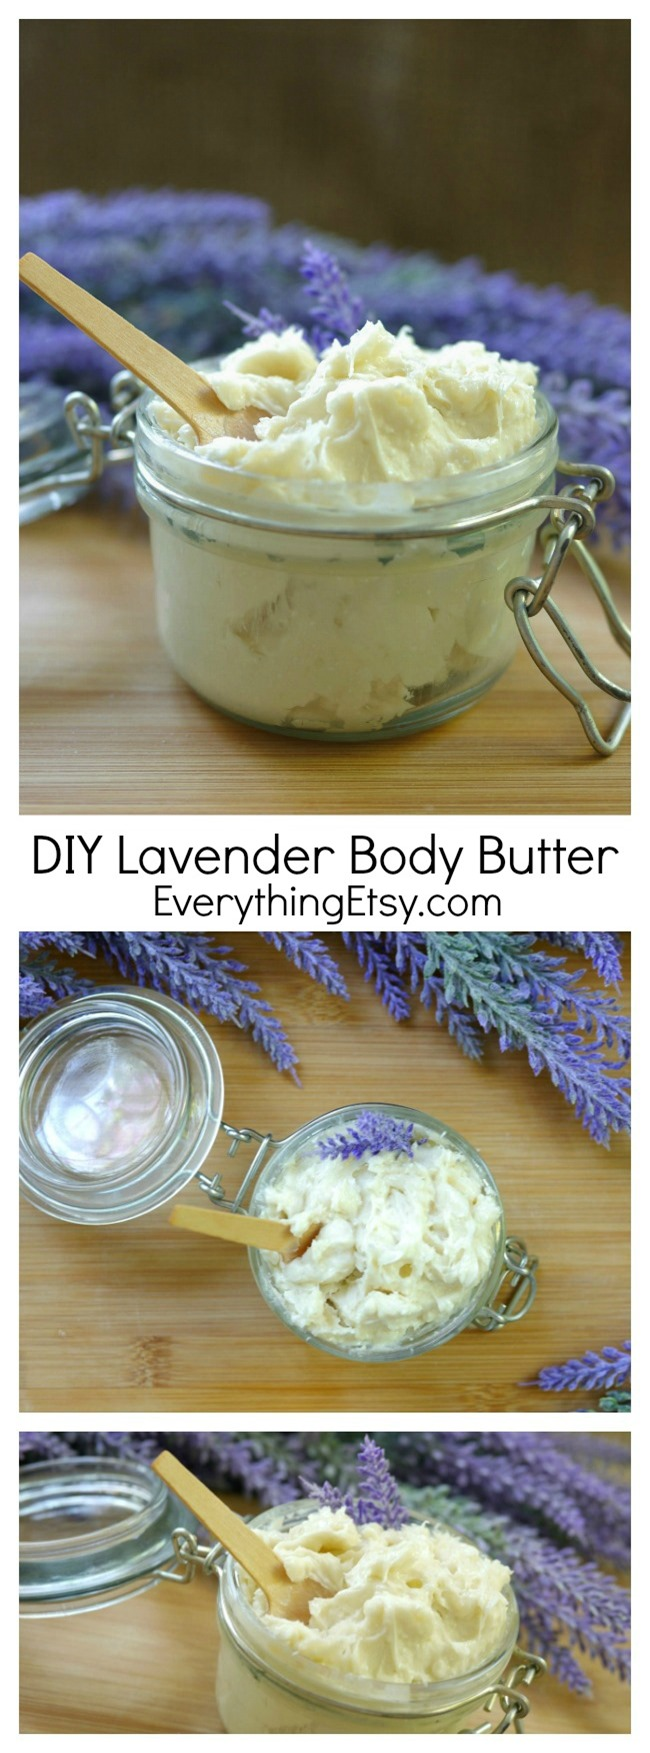 DIY Lavender Body Butter - Recipe on EverythingEtsy.com